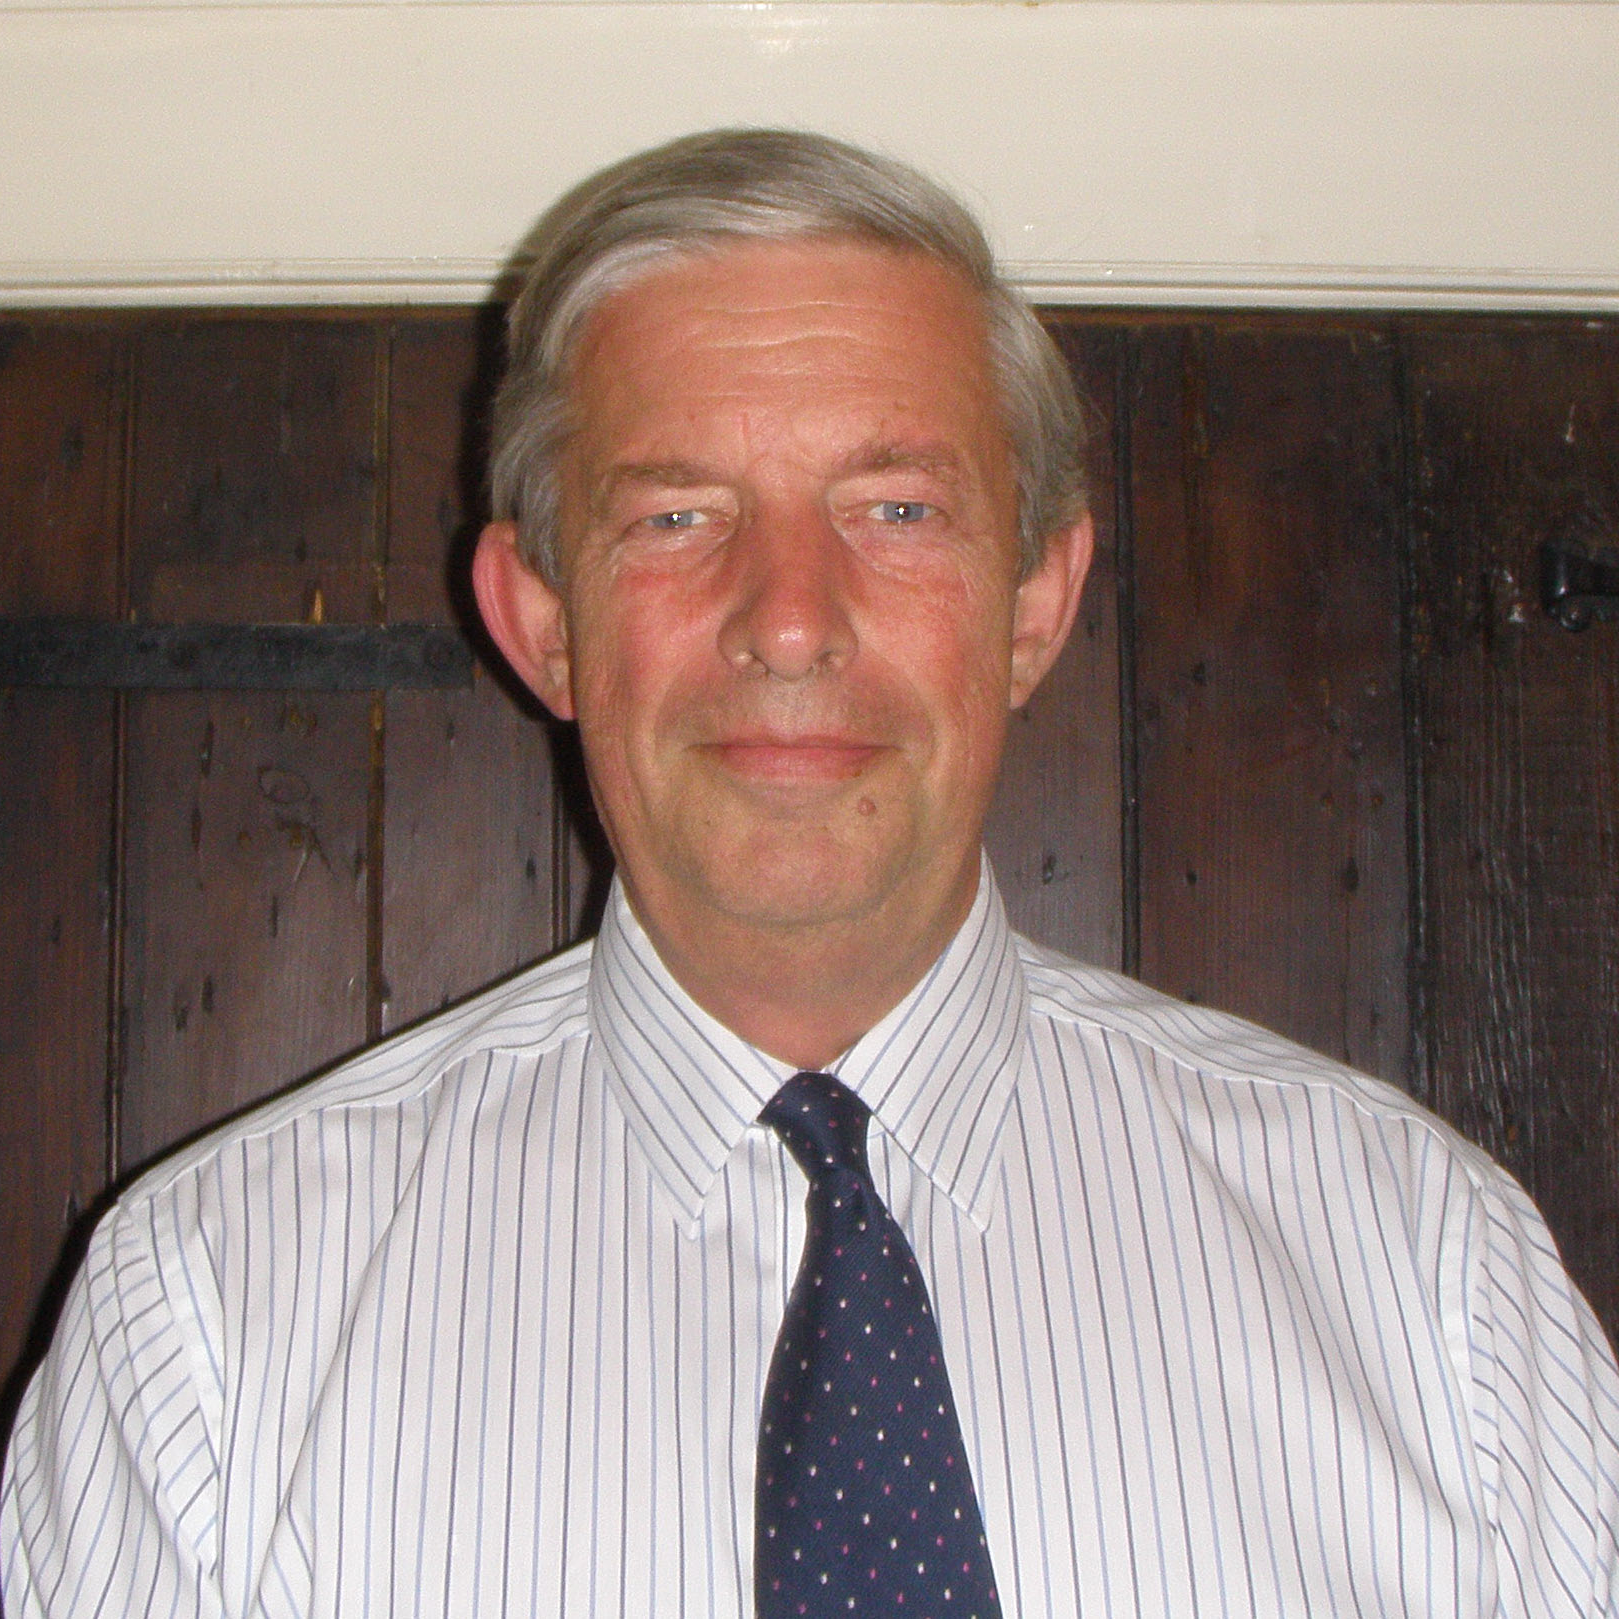 Commodore James Fanshawe (Ret.), Chair at UK Maritime Autonomous Systems Regulatory Working Group